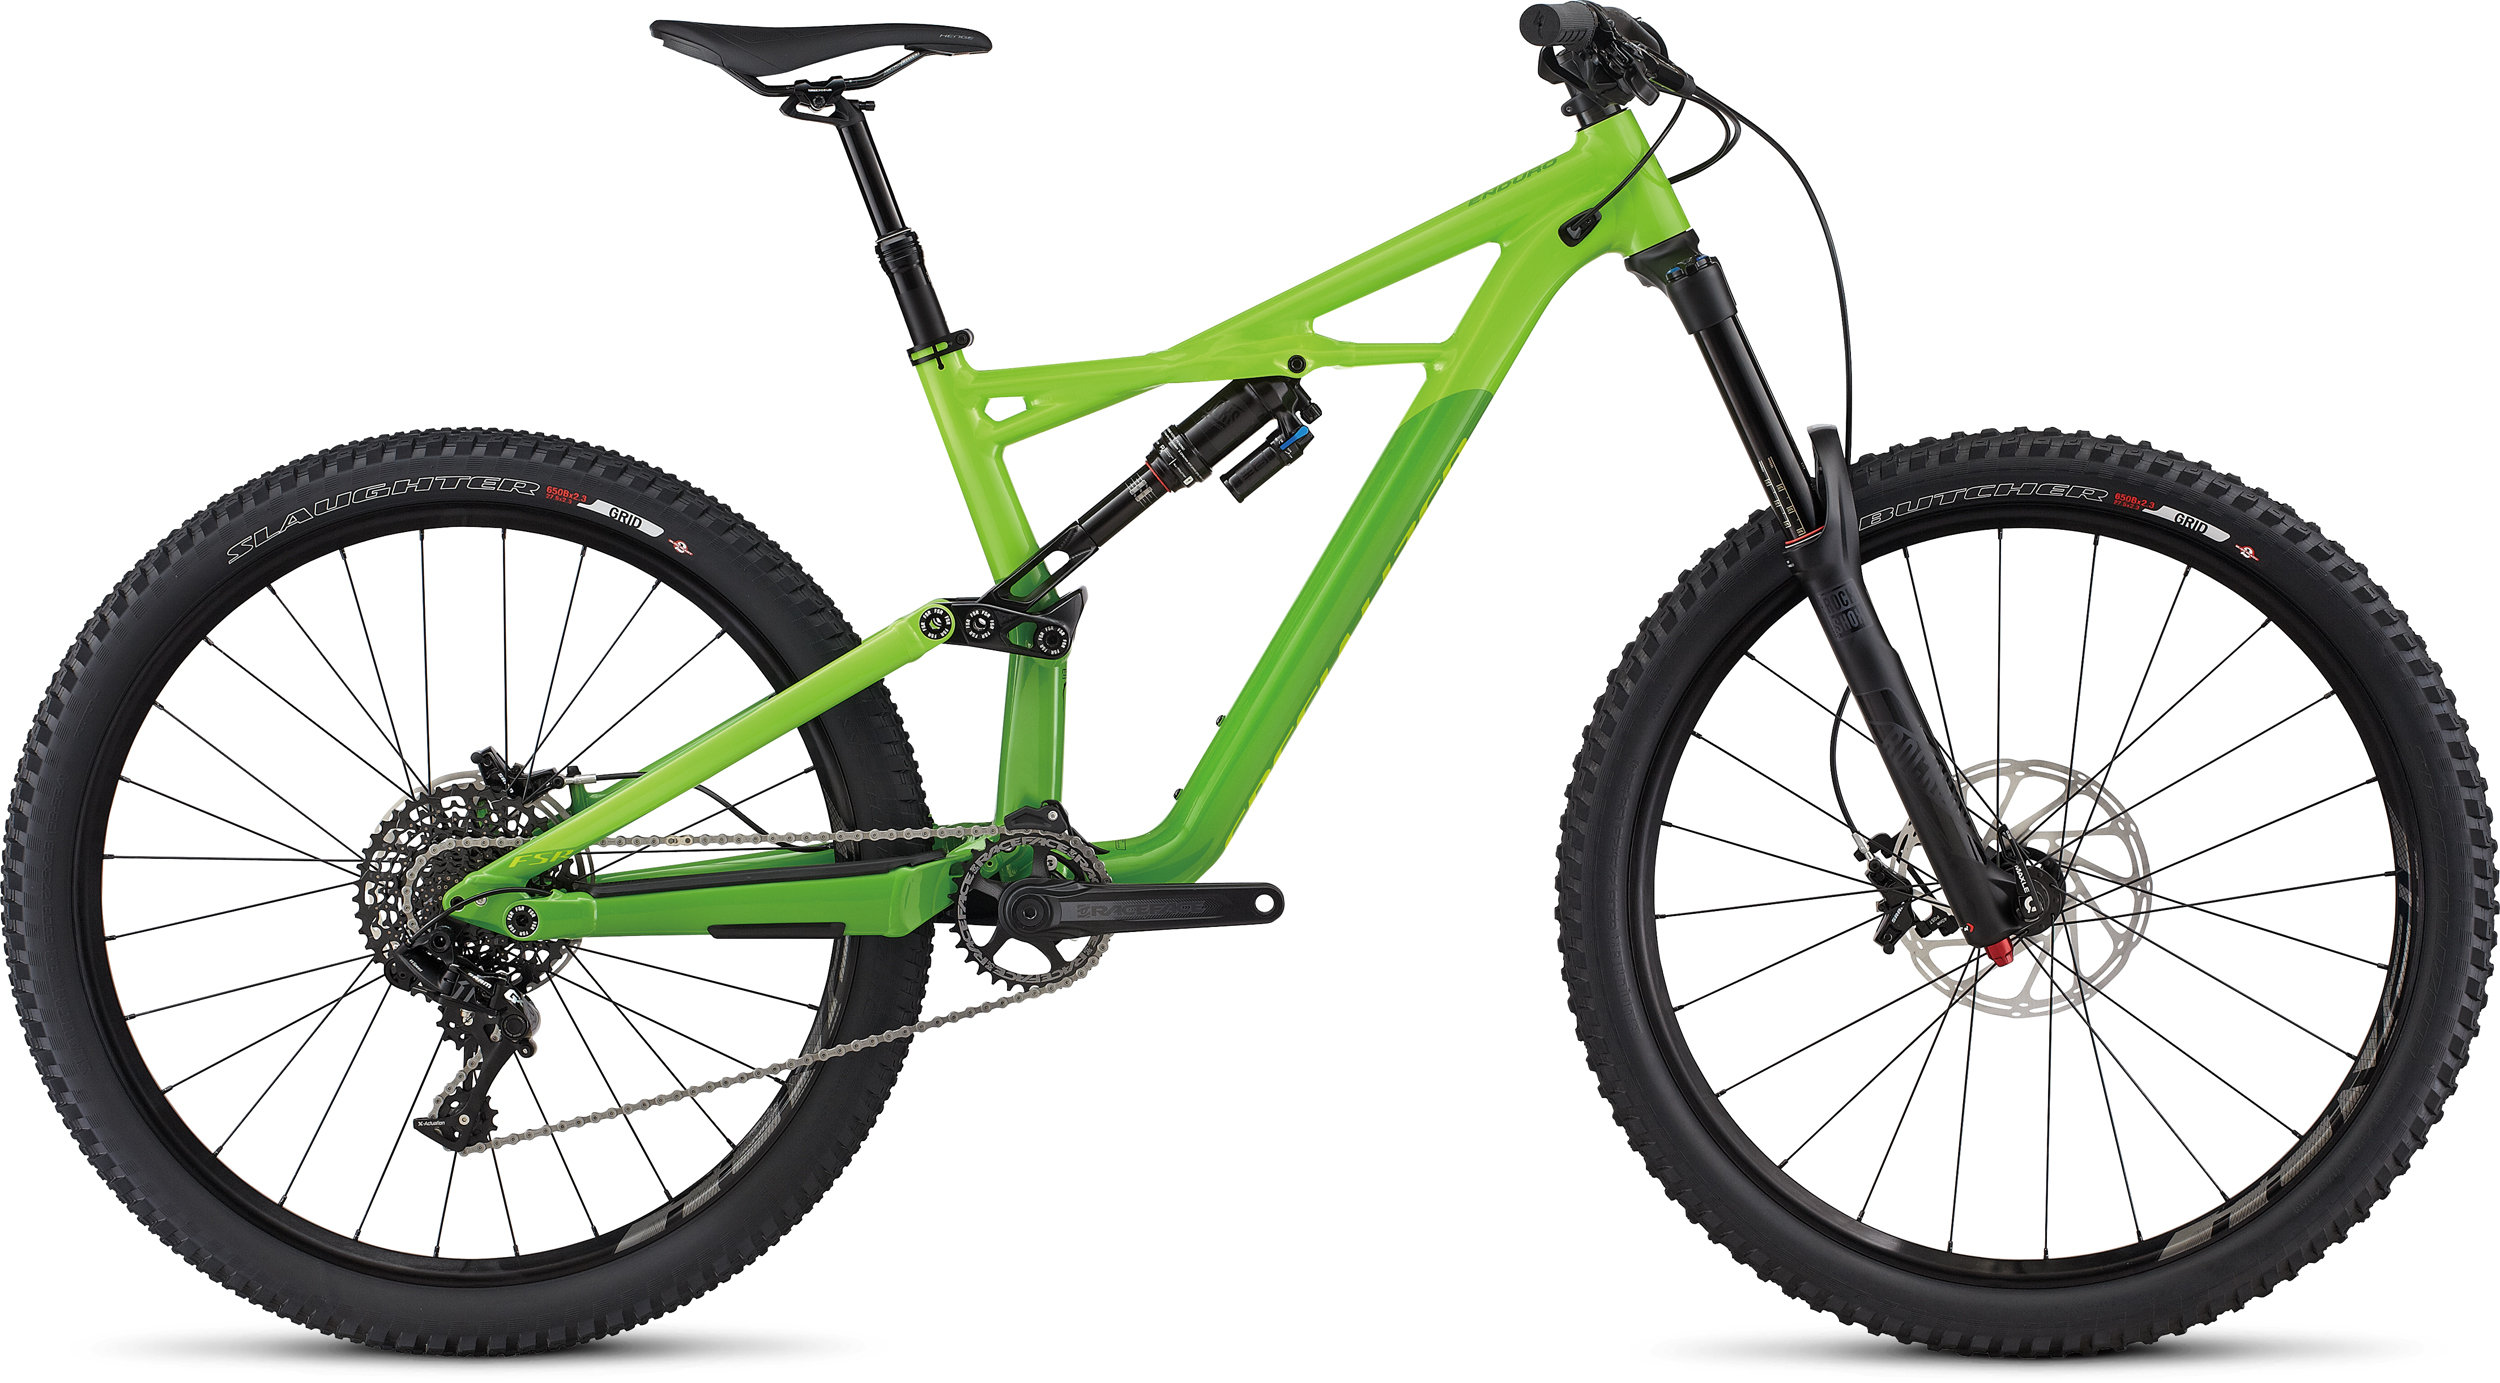 SPECIALIZED ENDURO FSR COMP 650B MXGRN/MONGRN/HYP L - Bike Zone